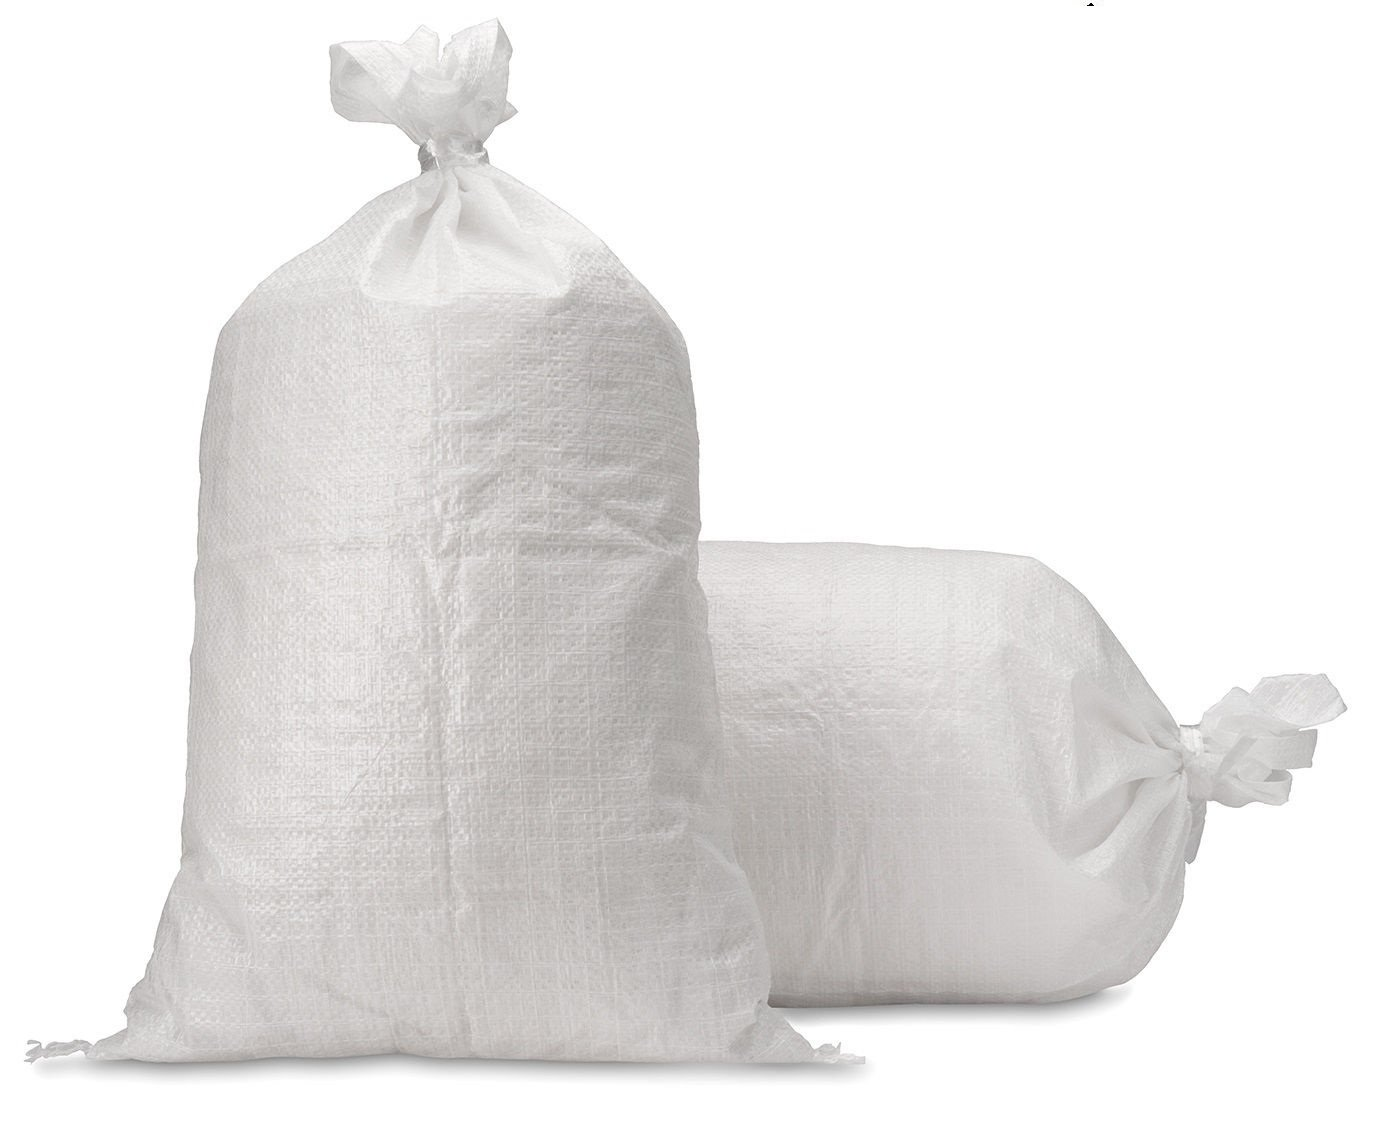 UpNorth Sand Bags - Empty White Woven Polypropylene Sandbags w/Ties, w/UV Protection; size: 14'' x 26'', Qty of 100 by UpNorth